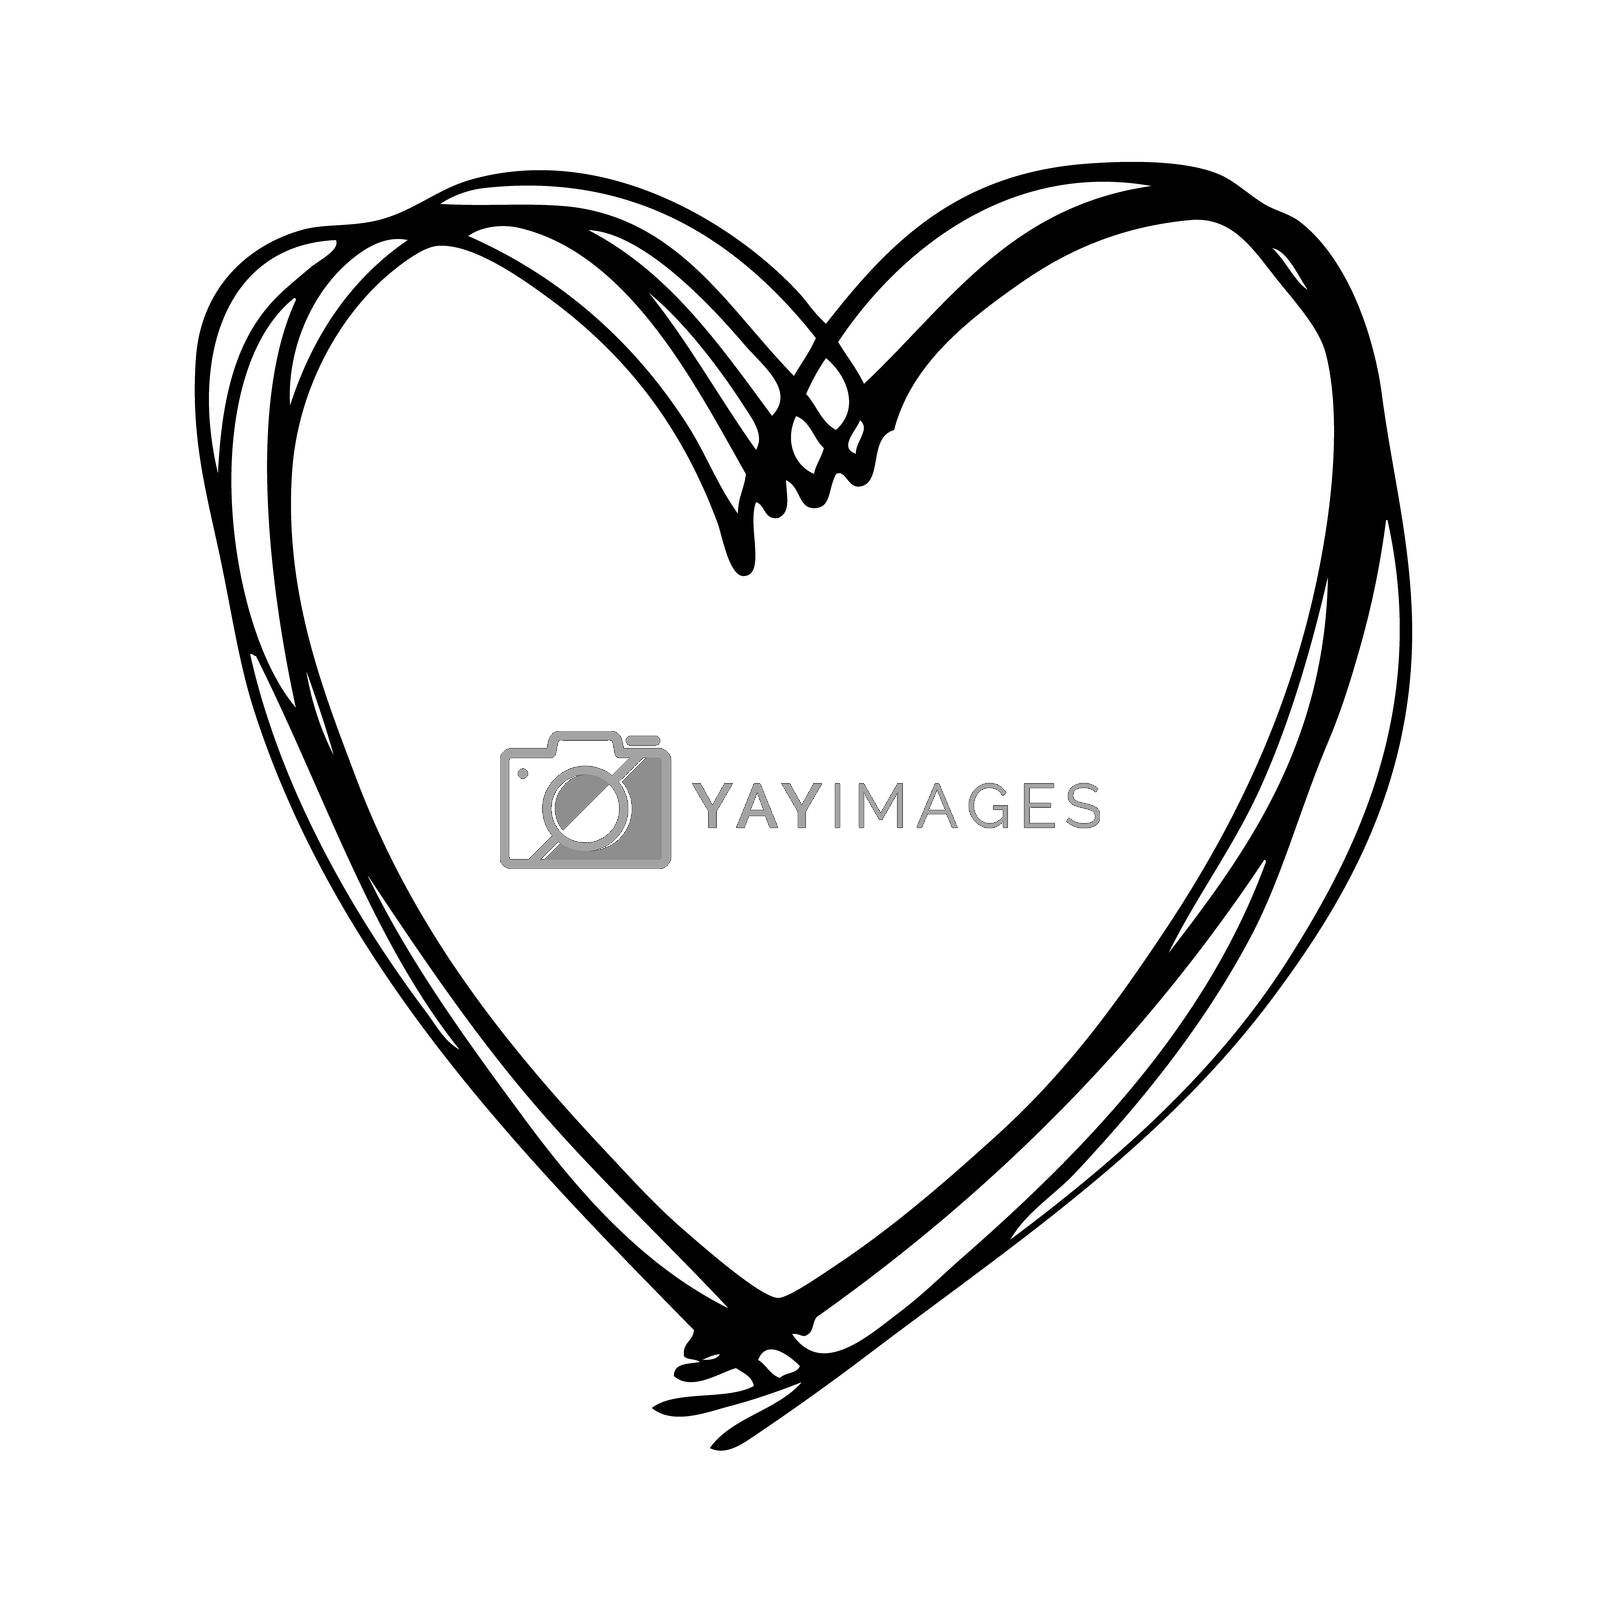 Royalty free image of doodle heart by simpleBE